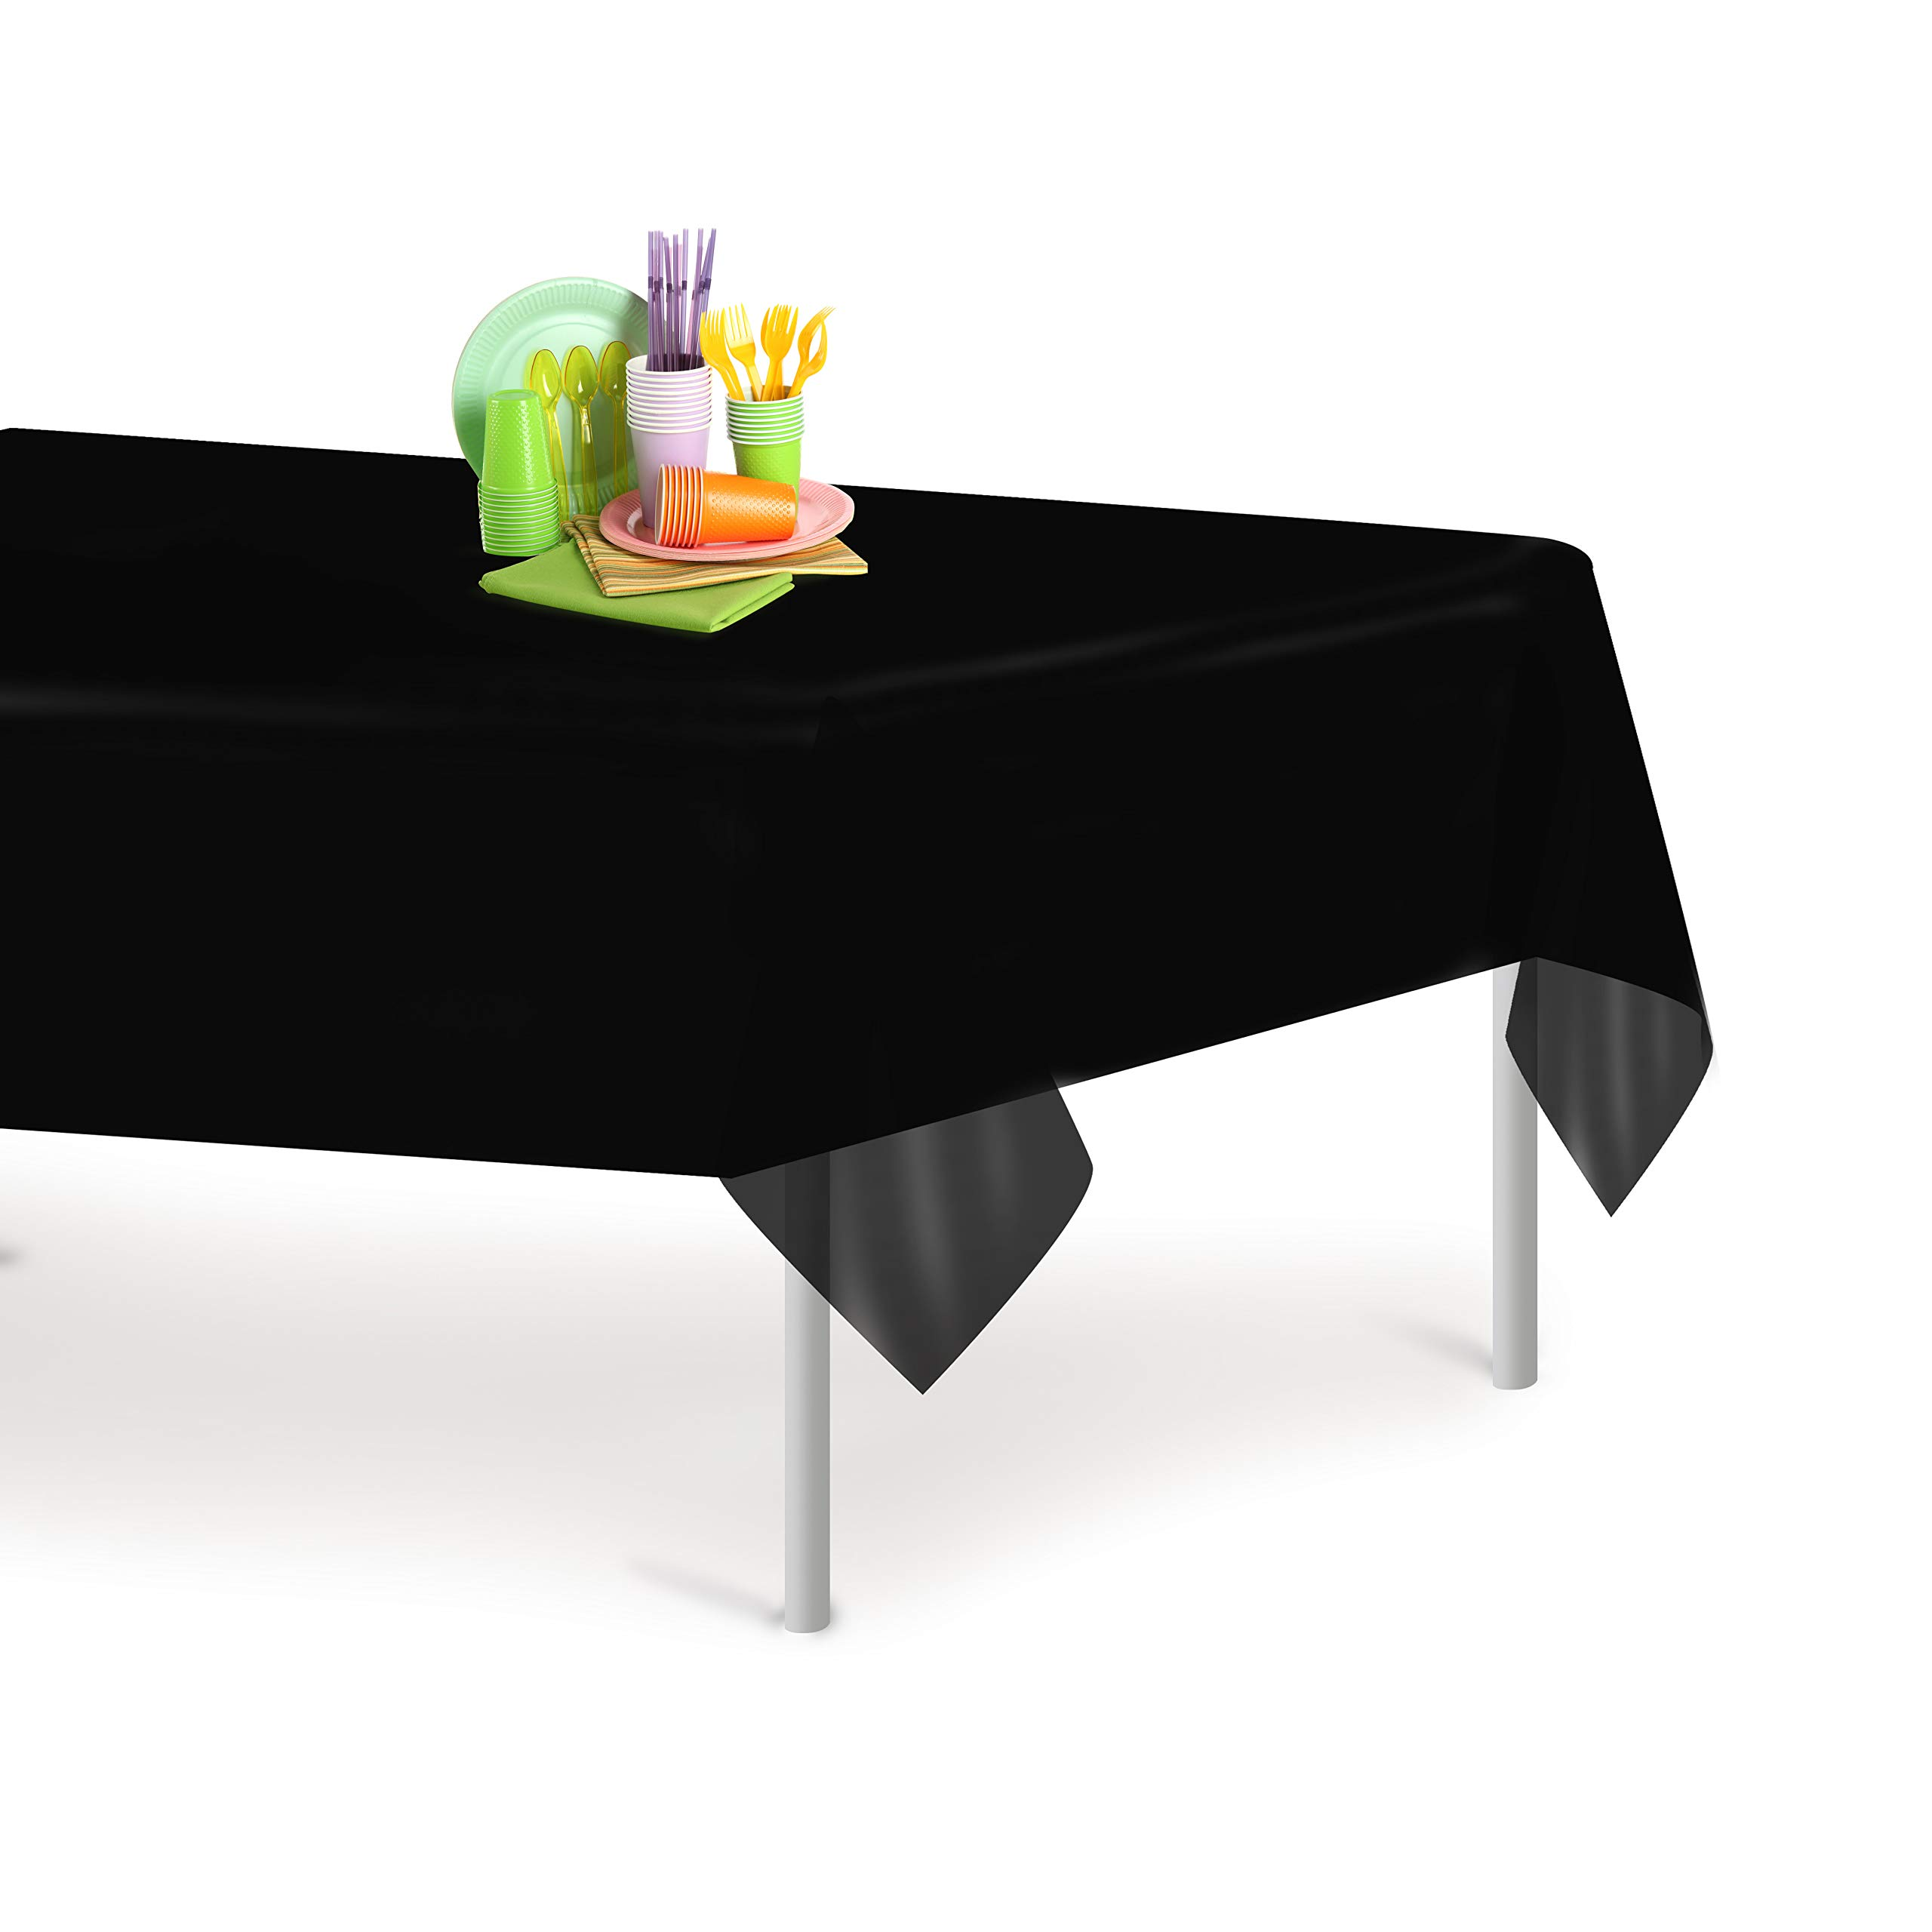 Black 12 Pack Premium Disposable Plastic Tablecloth 54 Inch. x 108 Inch. Rectangle Table Cover By Grandipity